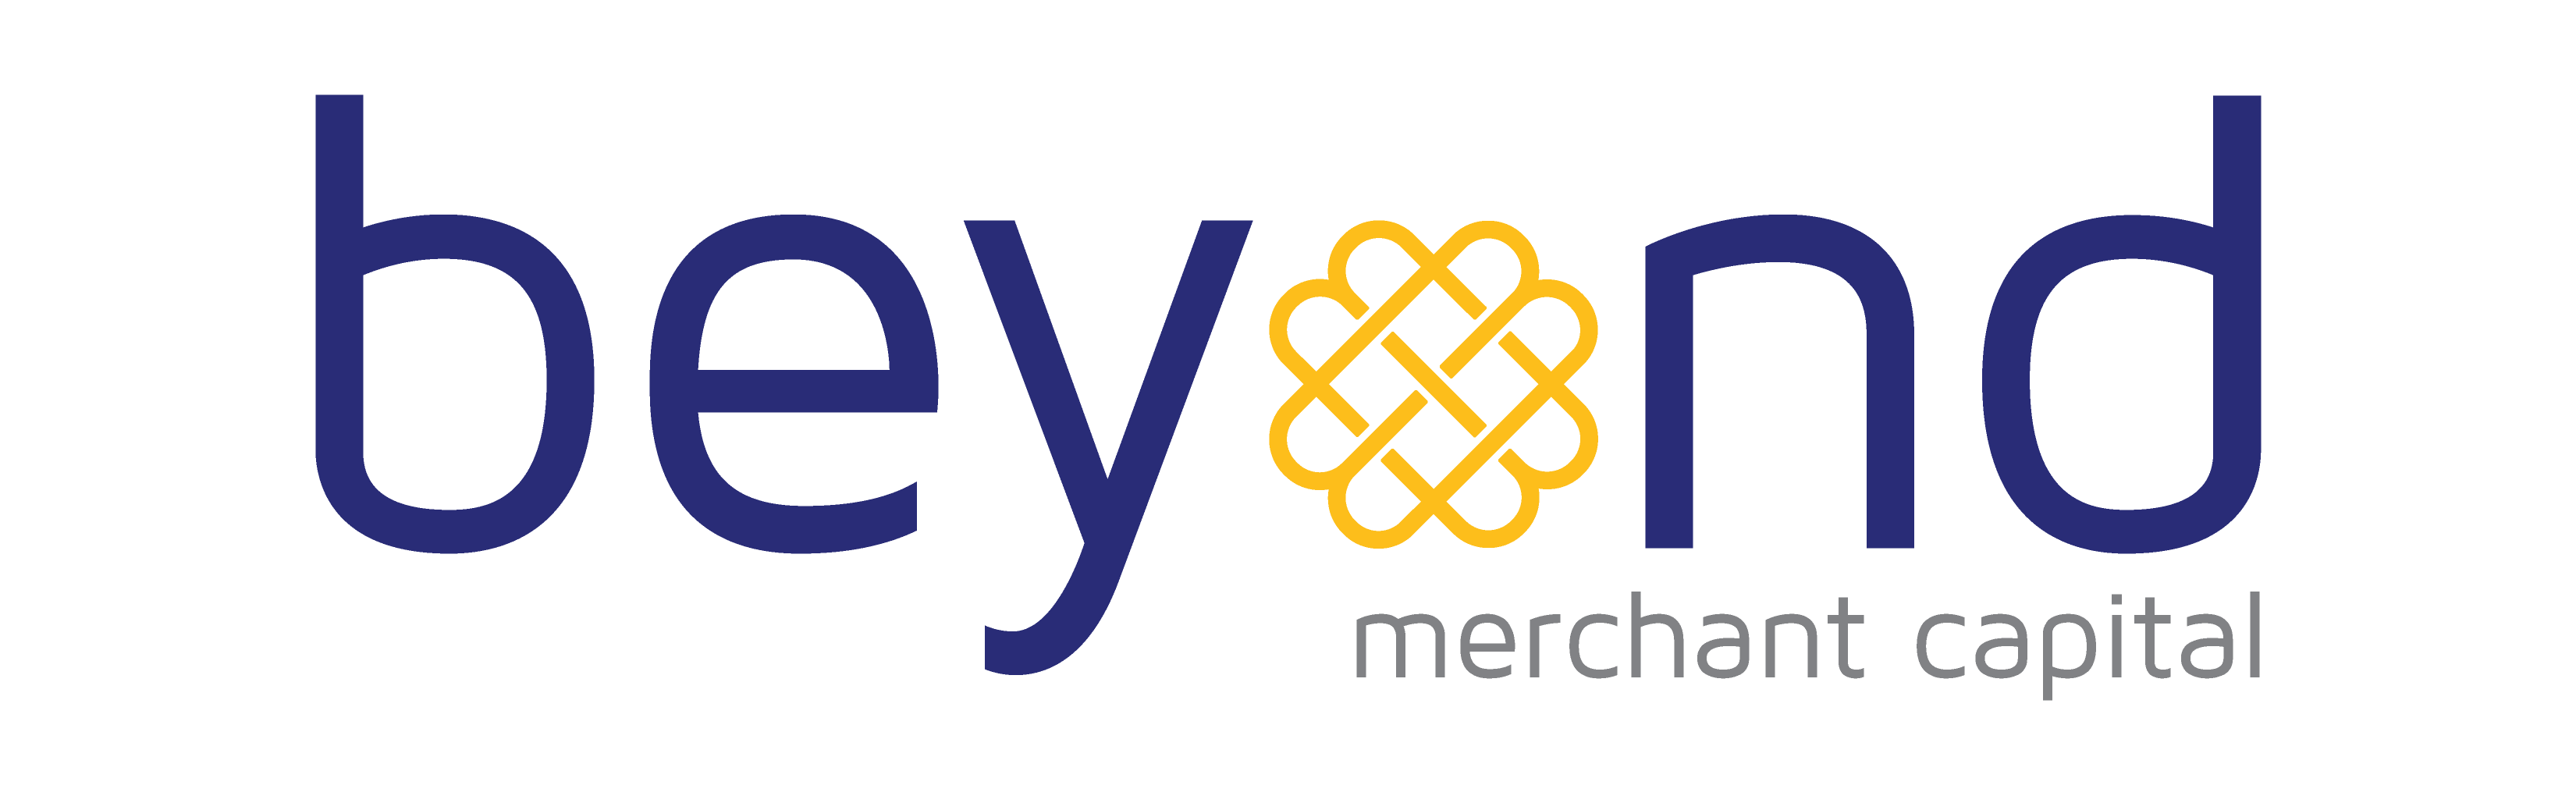 Beyond Merchant Capital logo